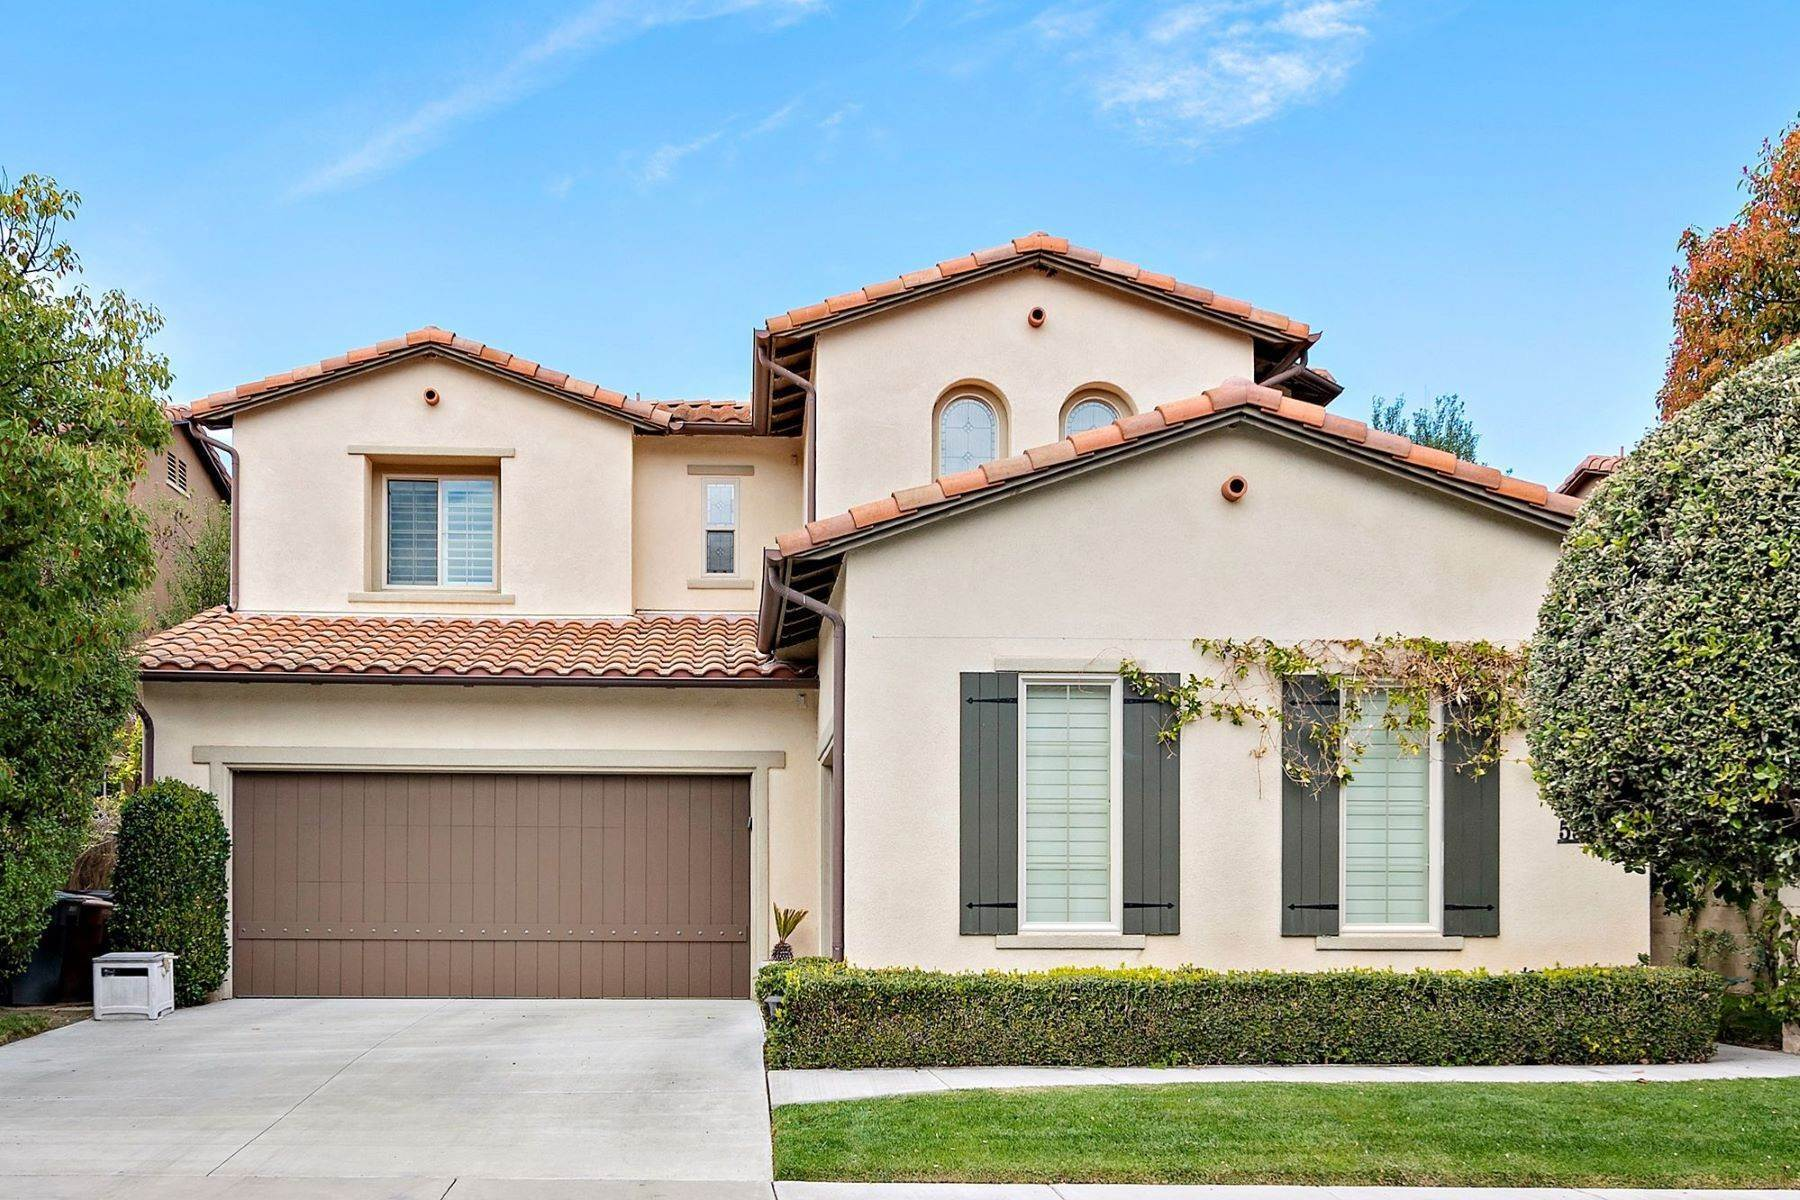 4. Single Family Homes for Sale at 53 Via Cartama, San Clemente, CA 92673 53 Via Cartama San Clemente, California 92673 United States